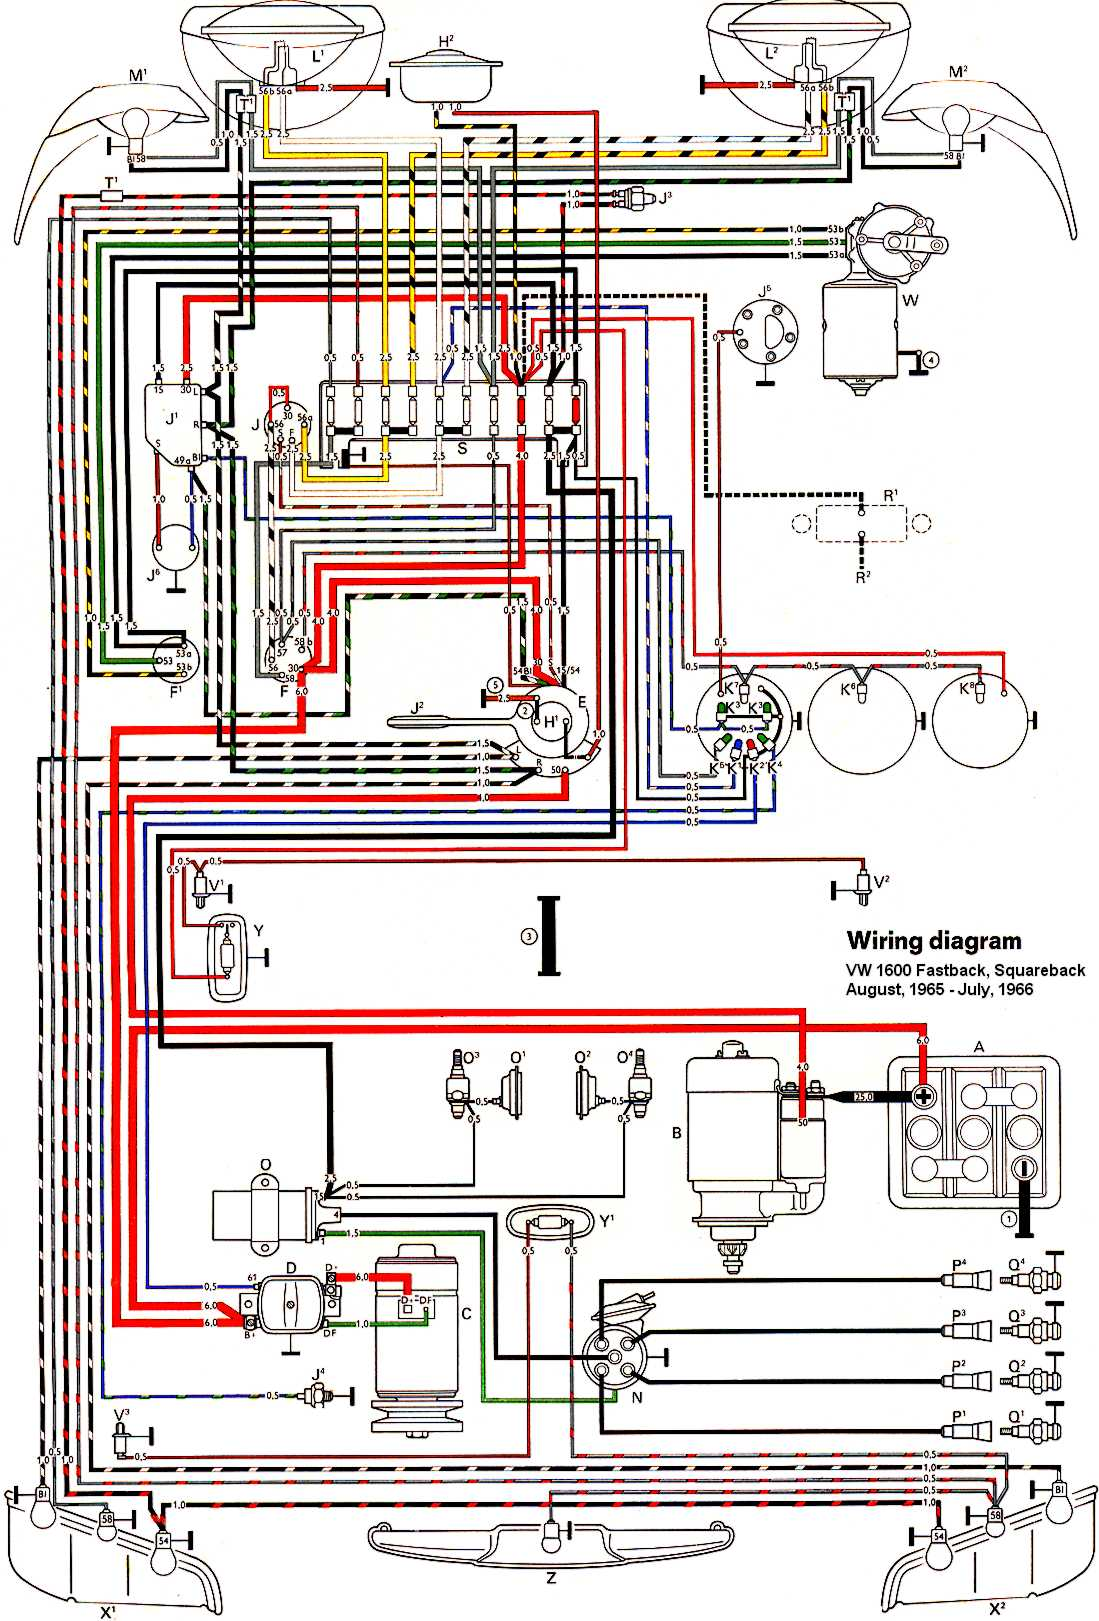 type3_1600_66 vw bus wiring diagram 1965 vw bus wiring diagram \u2022 wiring diagrams 1970 vw bug wiring diagram at soozxer.org